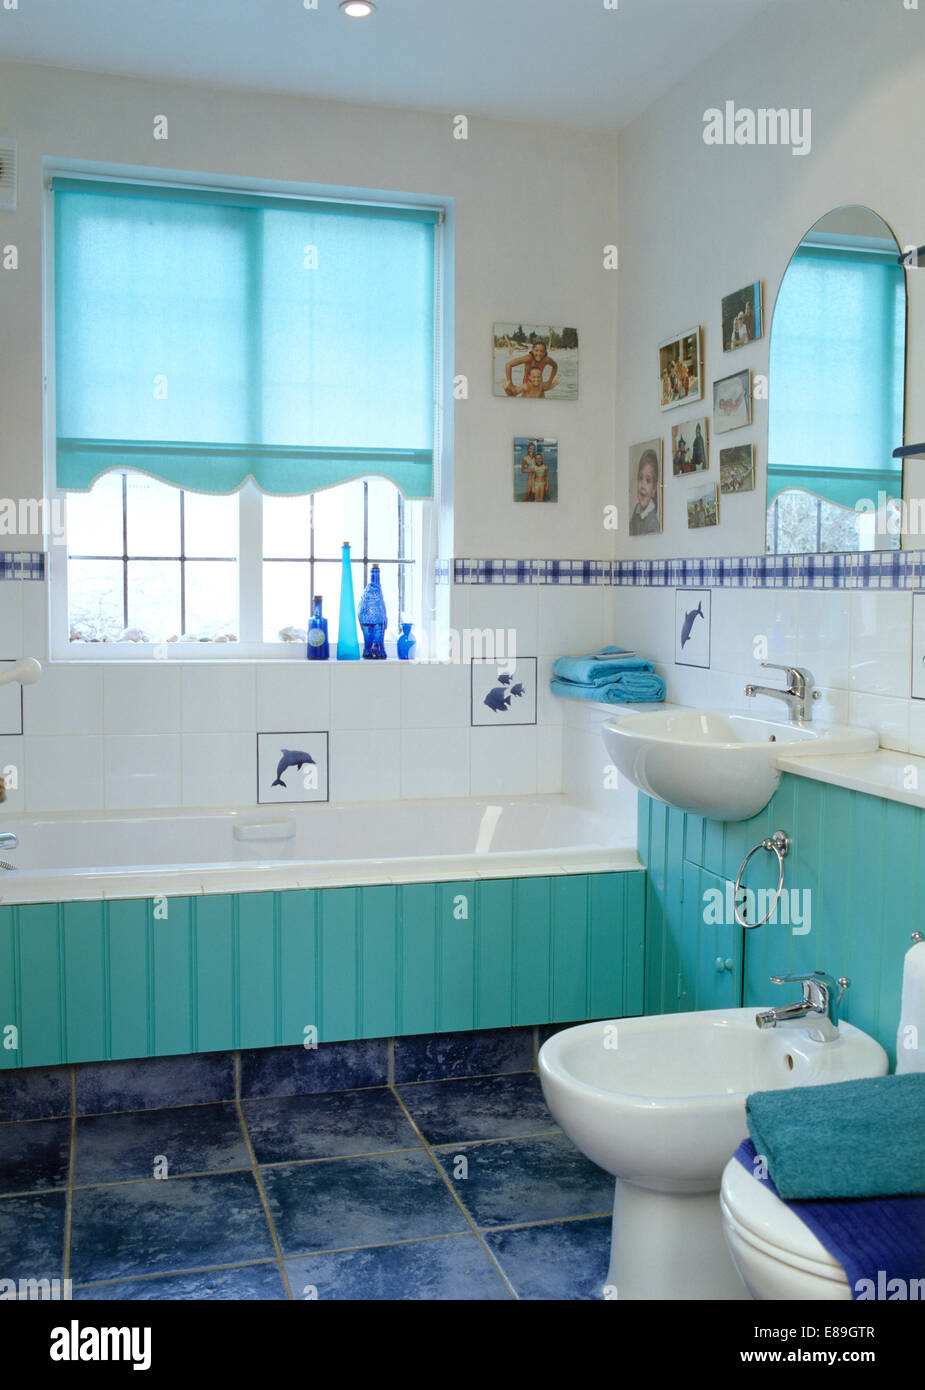 Turquoise blind on window above turquoise tongue+groove panelled ...